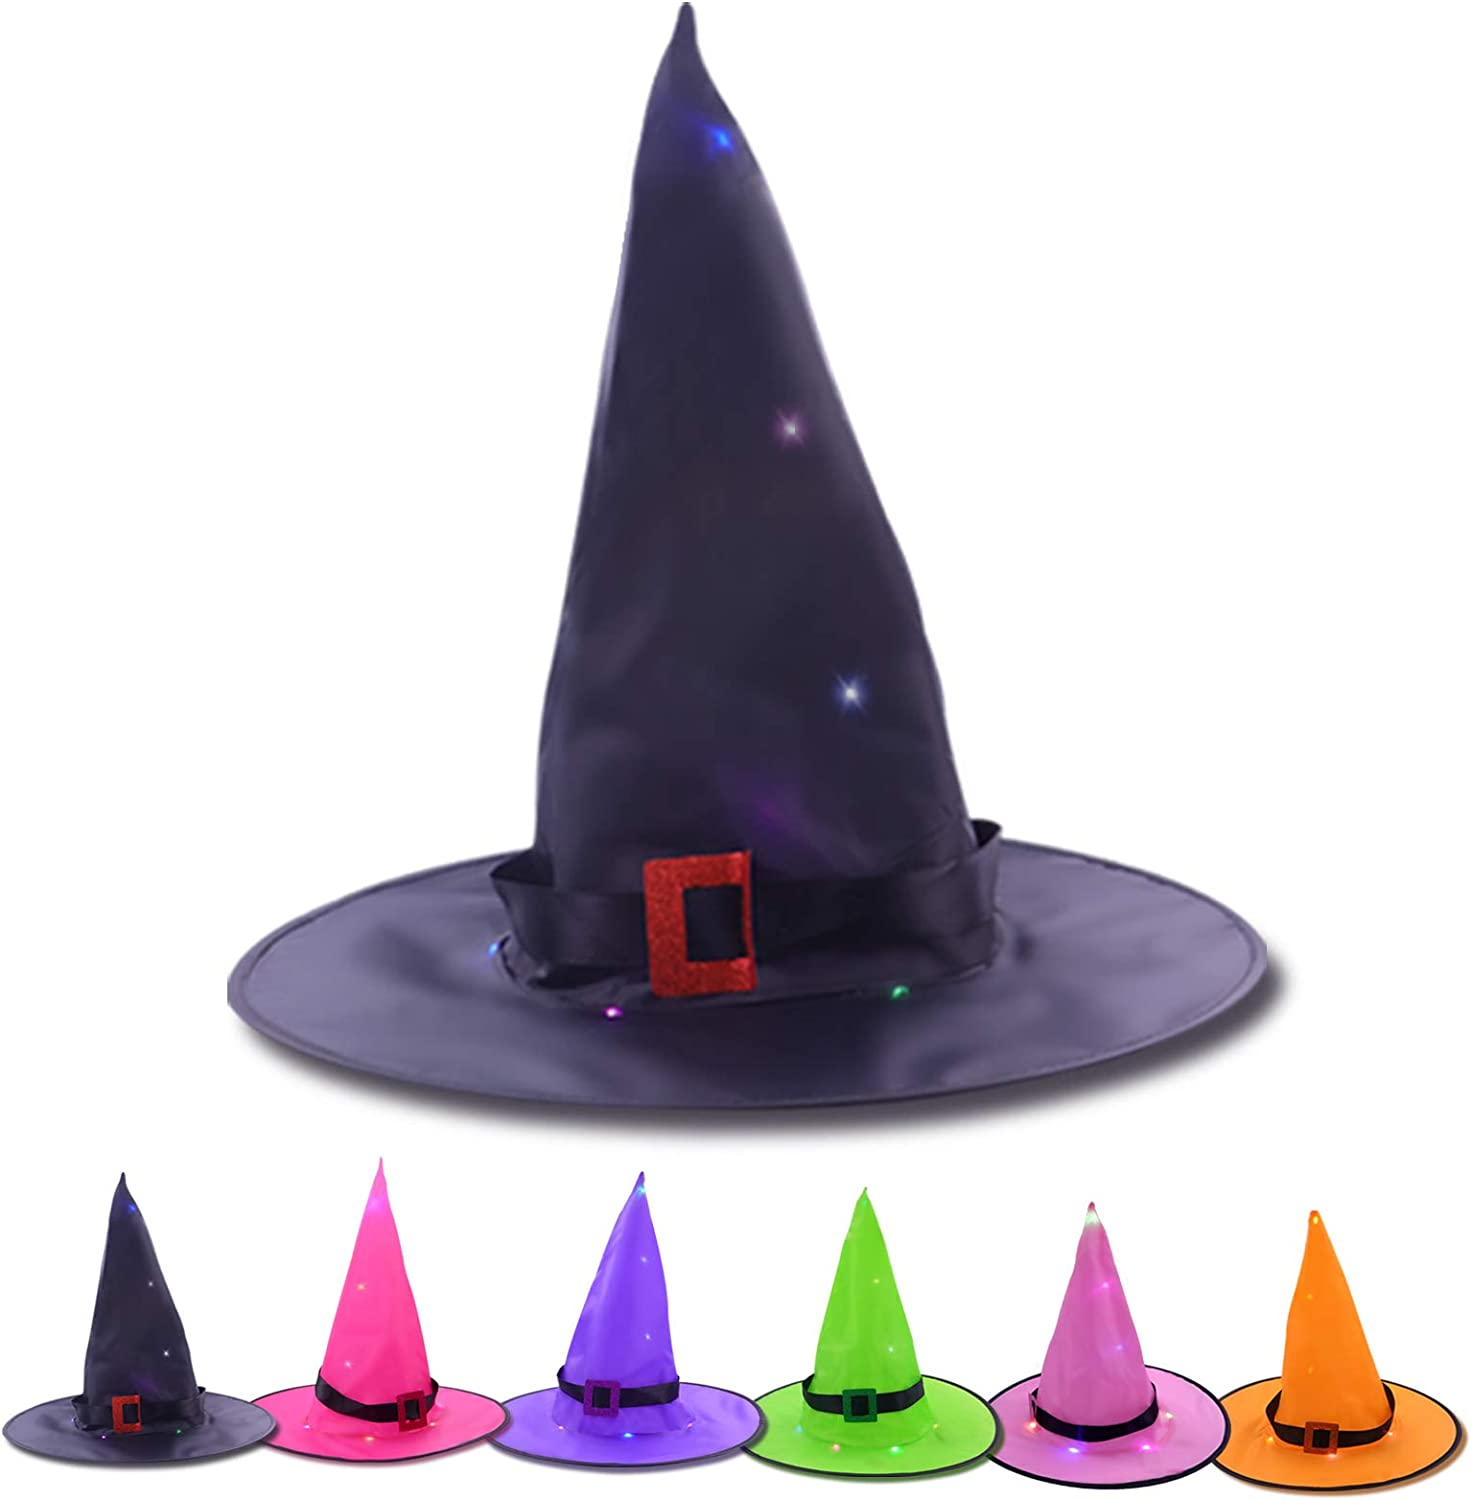 Max 46% OFF Ranking TOP10 Halloween Decorations Lighted Witch Hanging Glowing 6Pcs Hats